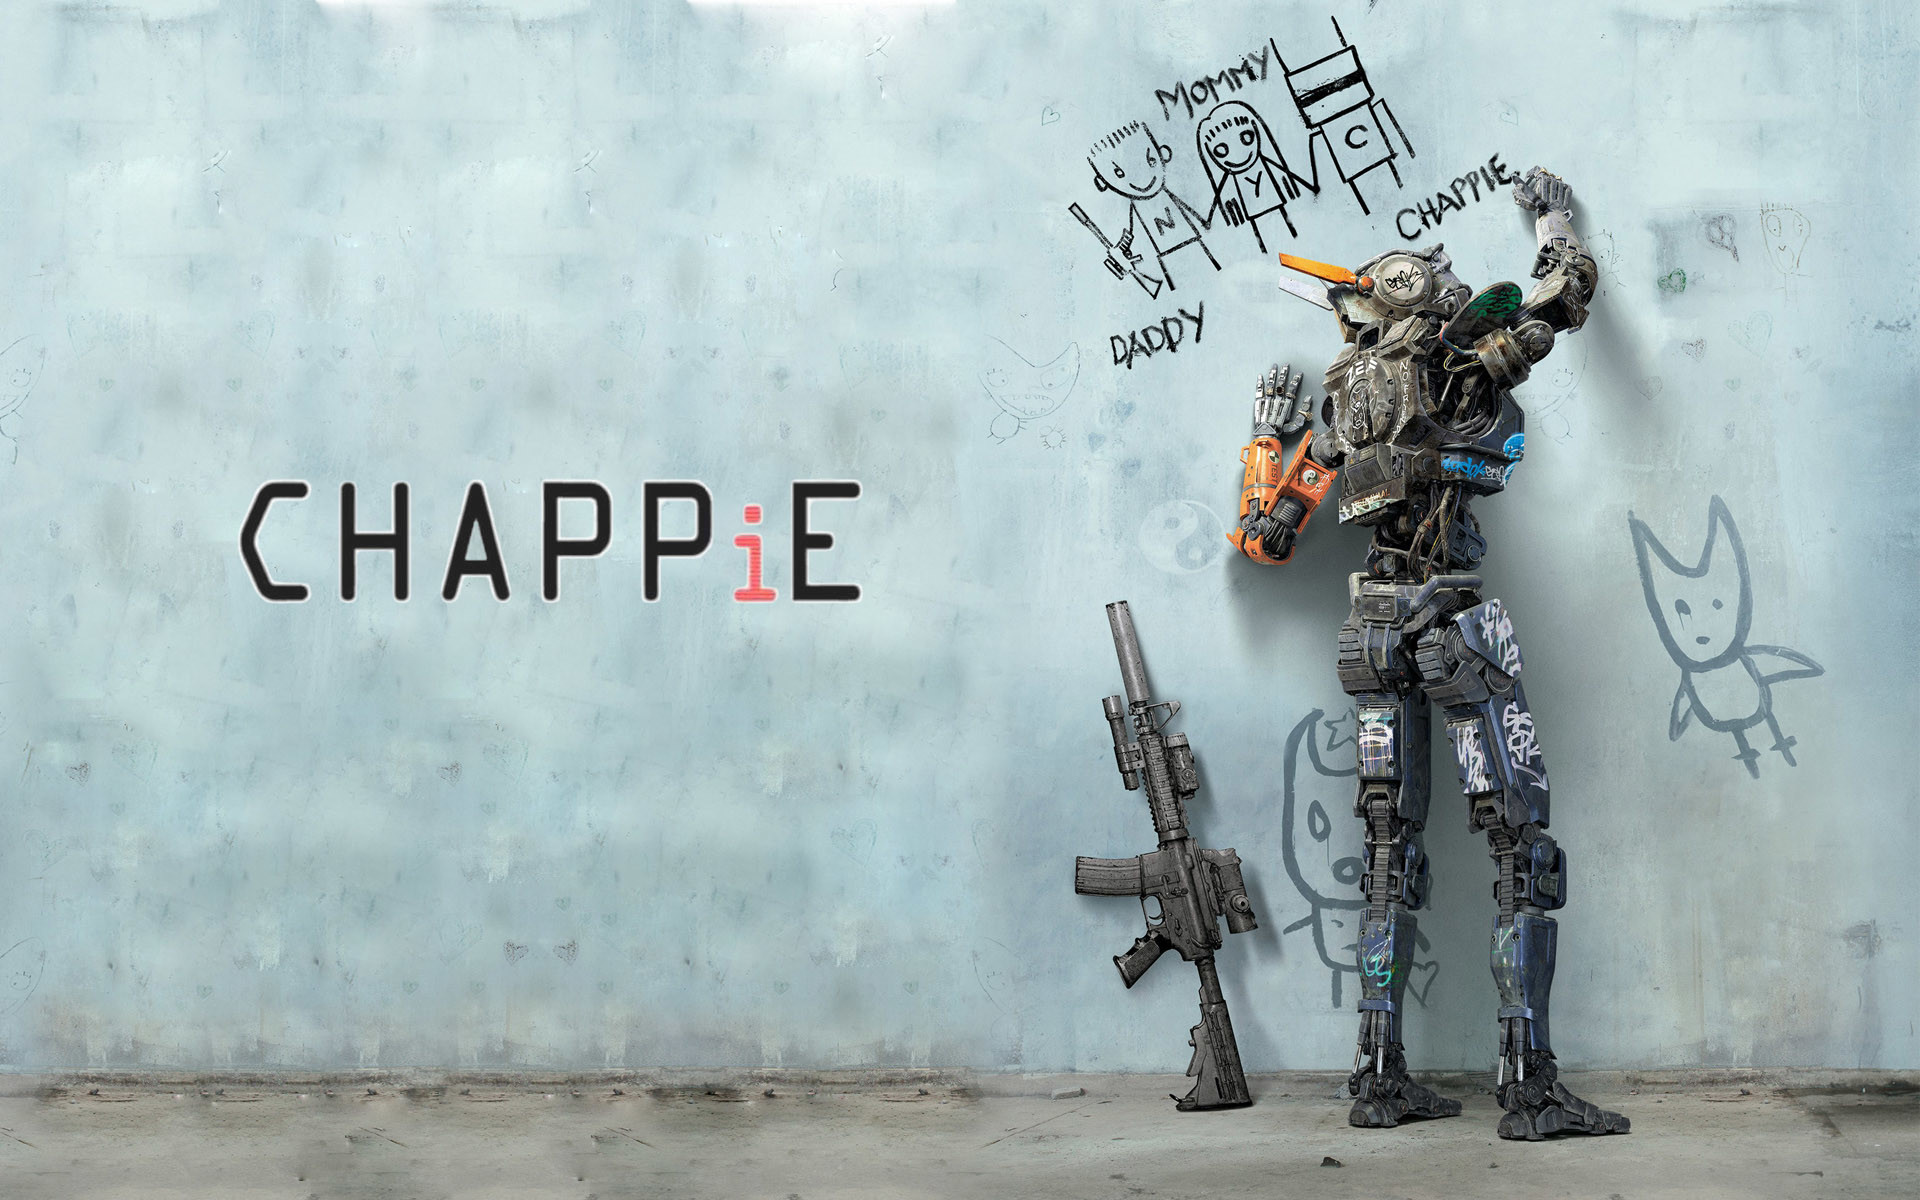 1920x1200 ... chappie-movie-poster-2015-wallpaper-robot-die-antwoord.jpg ...